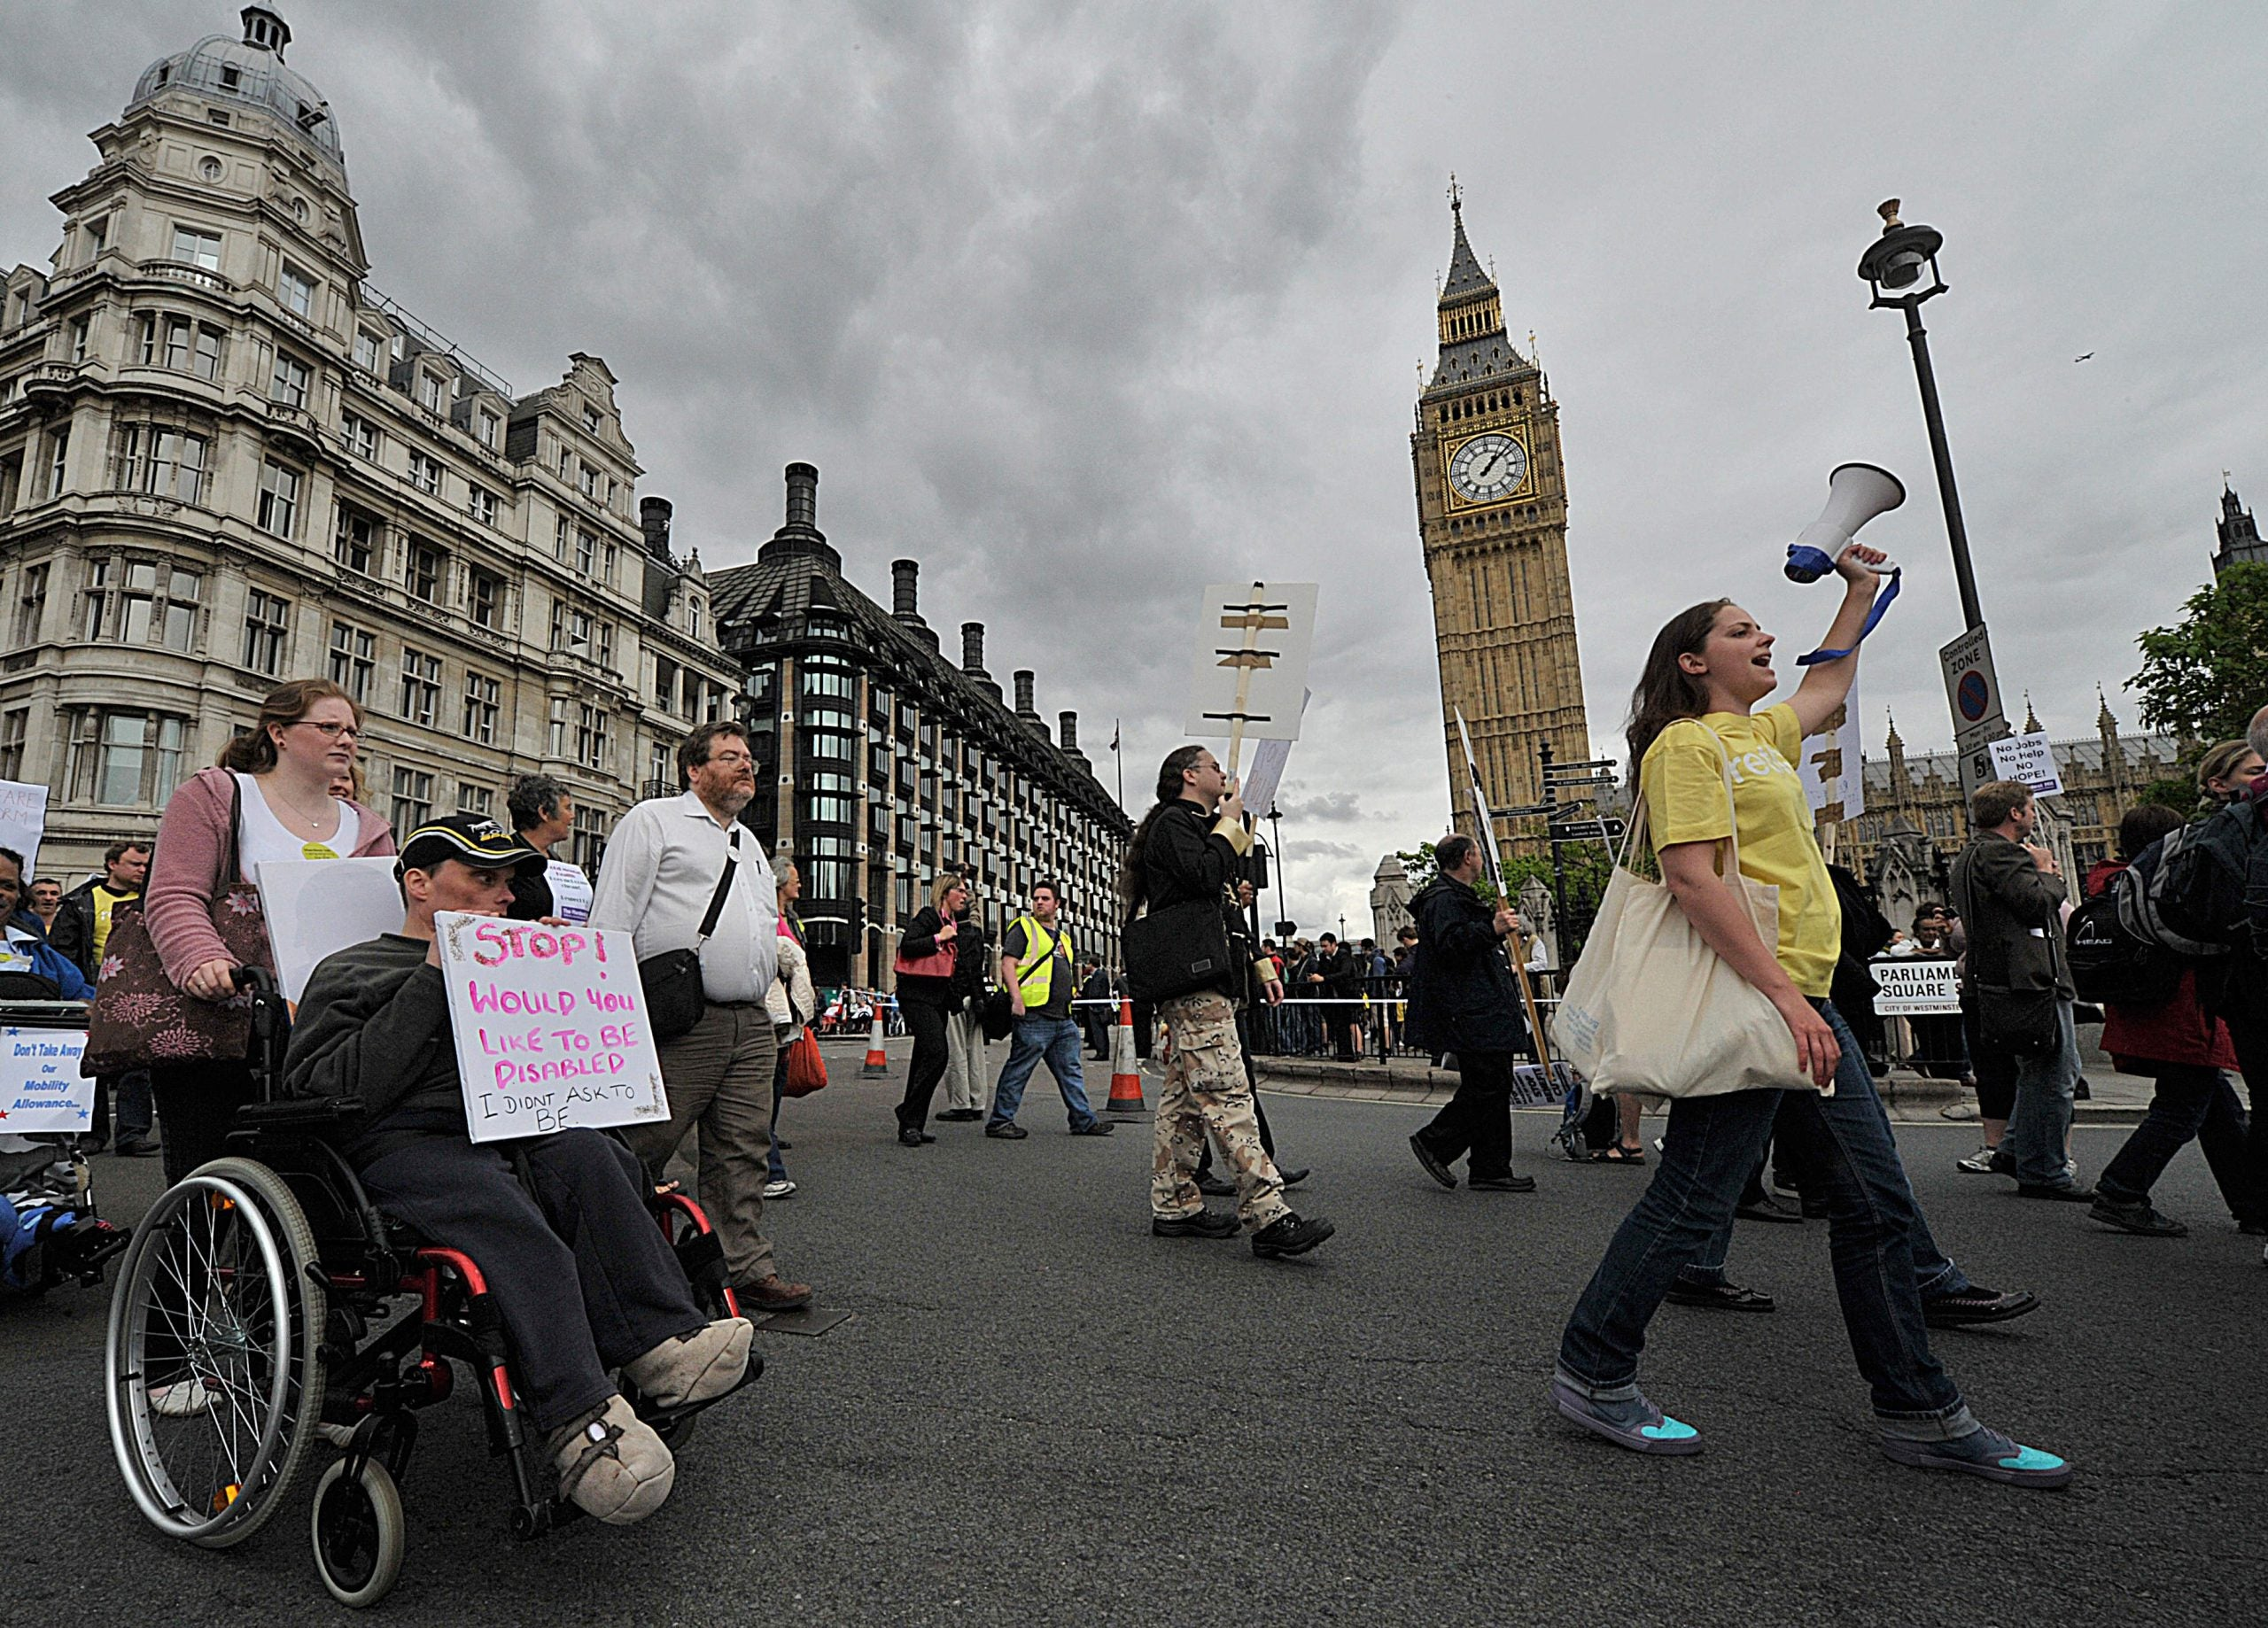 Don't forget the most under-represented group in our democracy - disabled people